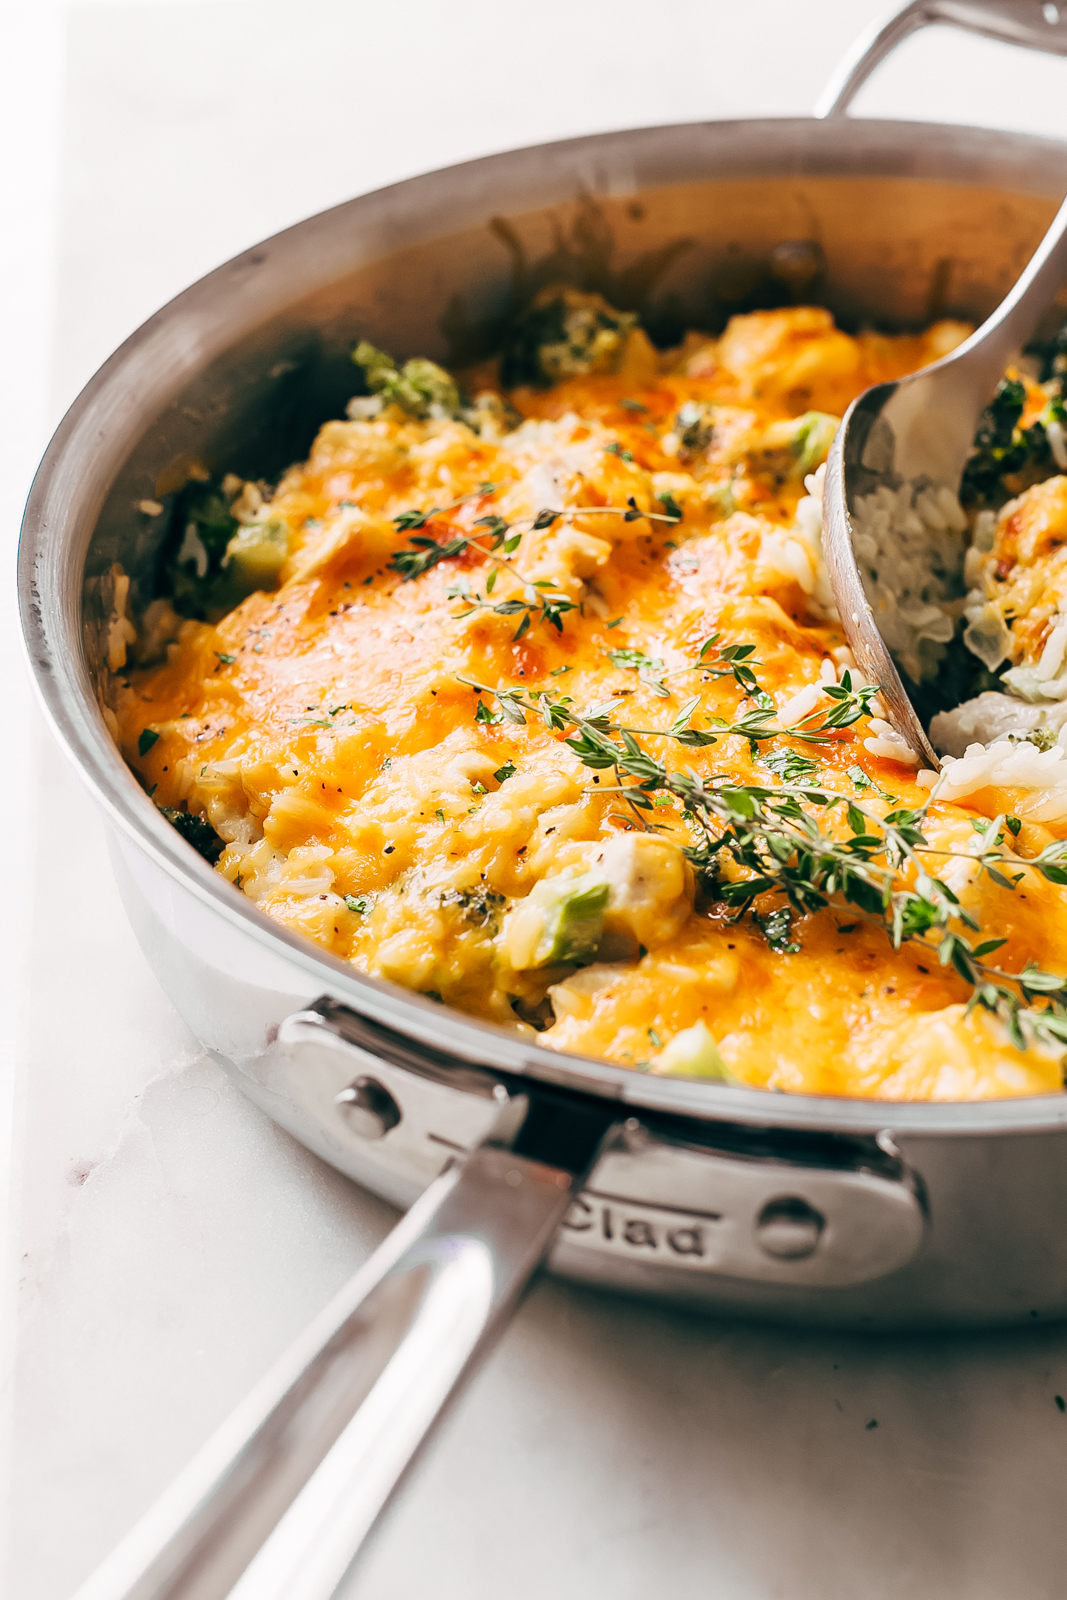 melted cheese on chicken broccoli rice casserole in stainless steel pan